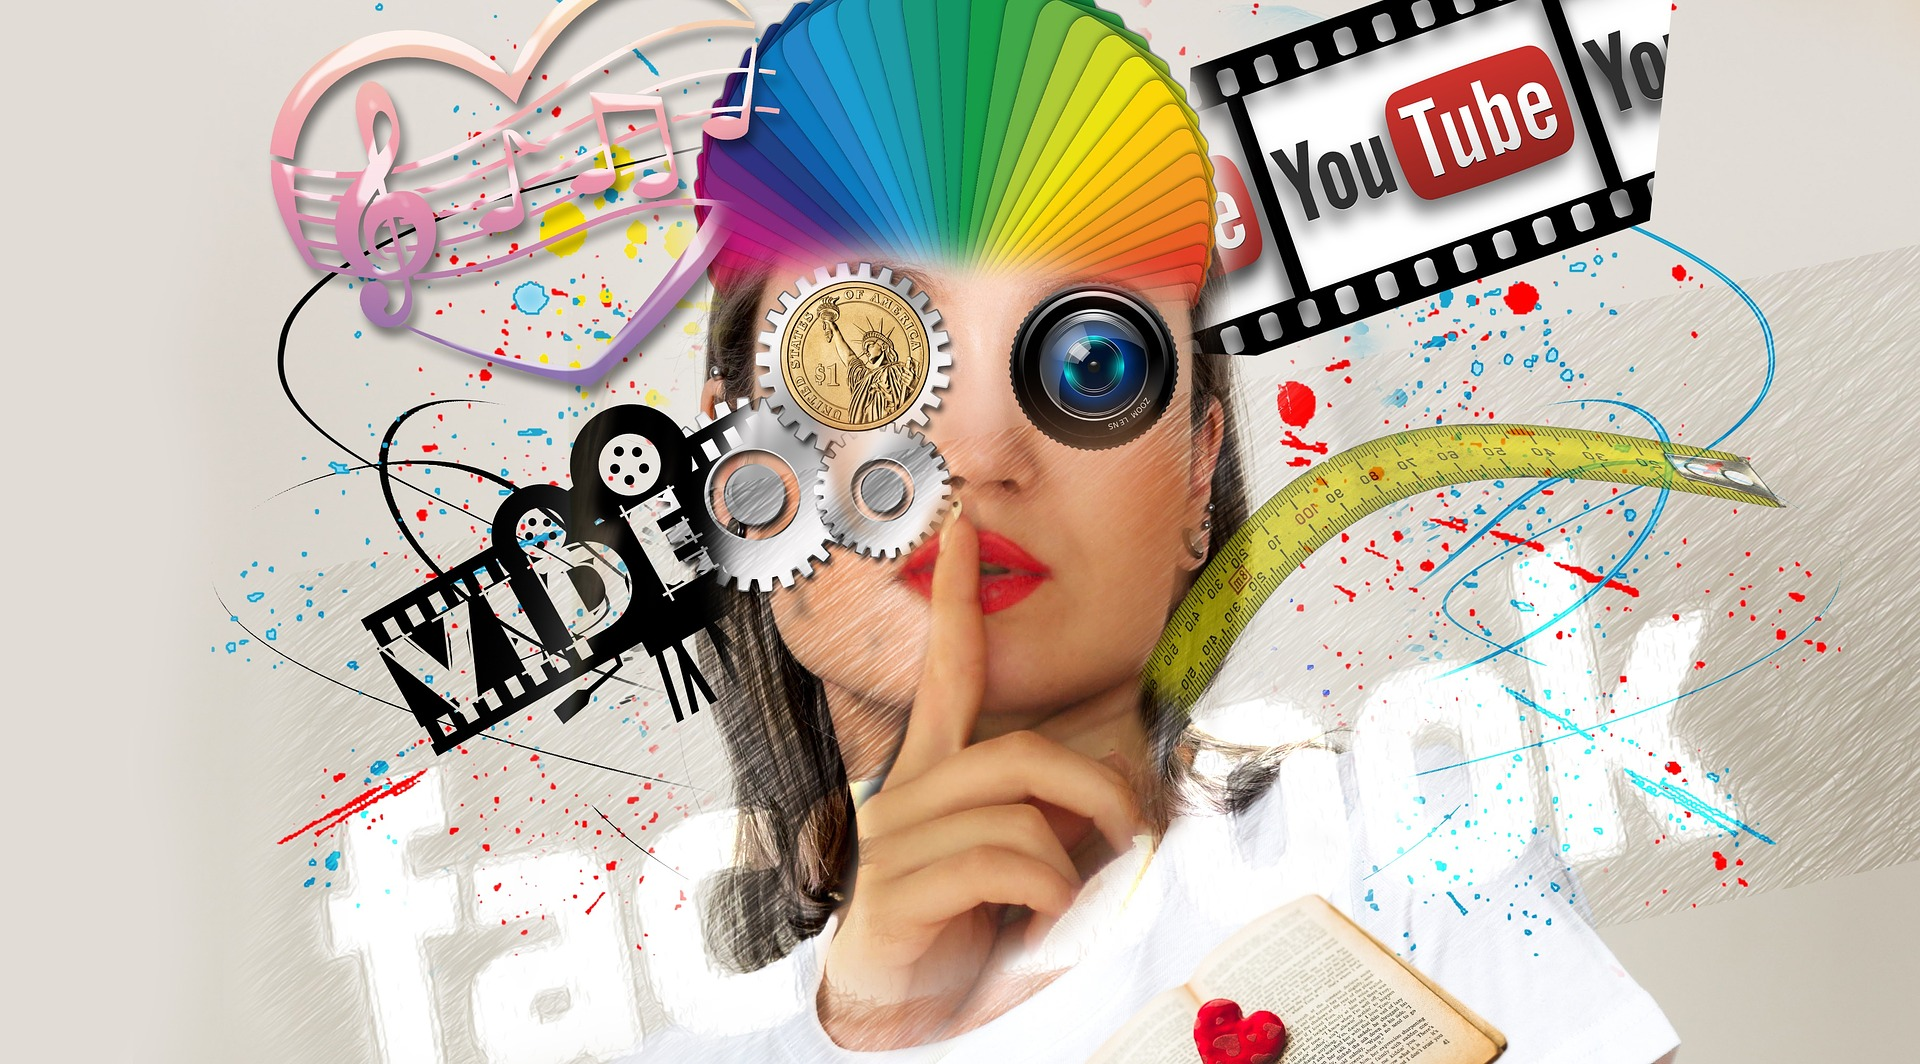 Il video marketing per vincere nei social media